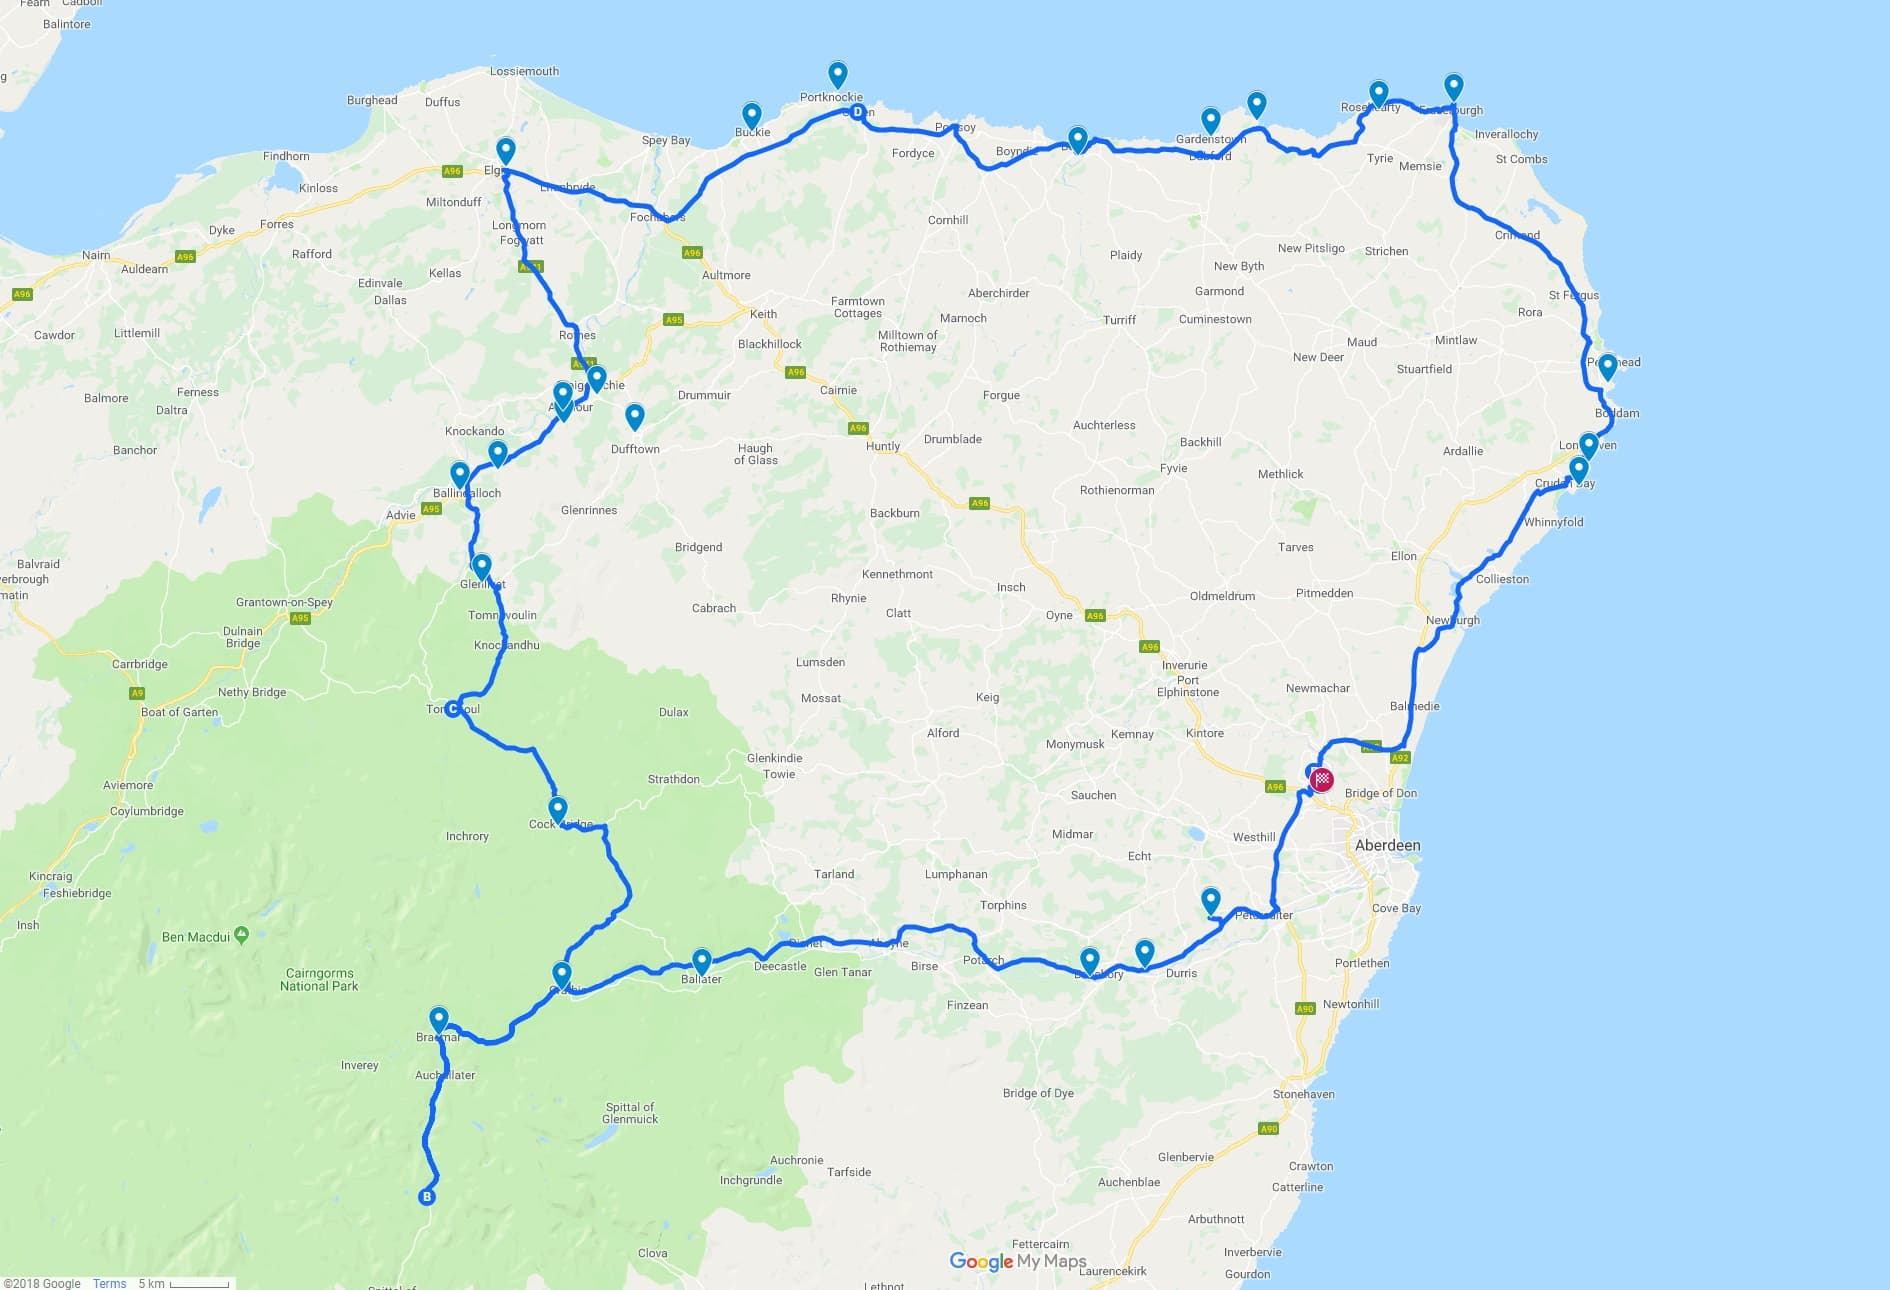 The North East 250: A 3 Day Scotland Road Trip Itinerary